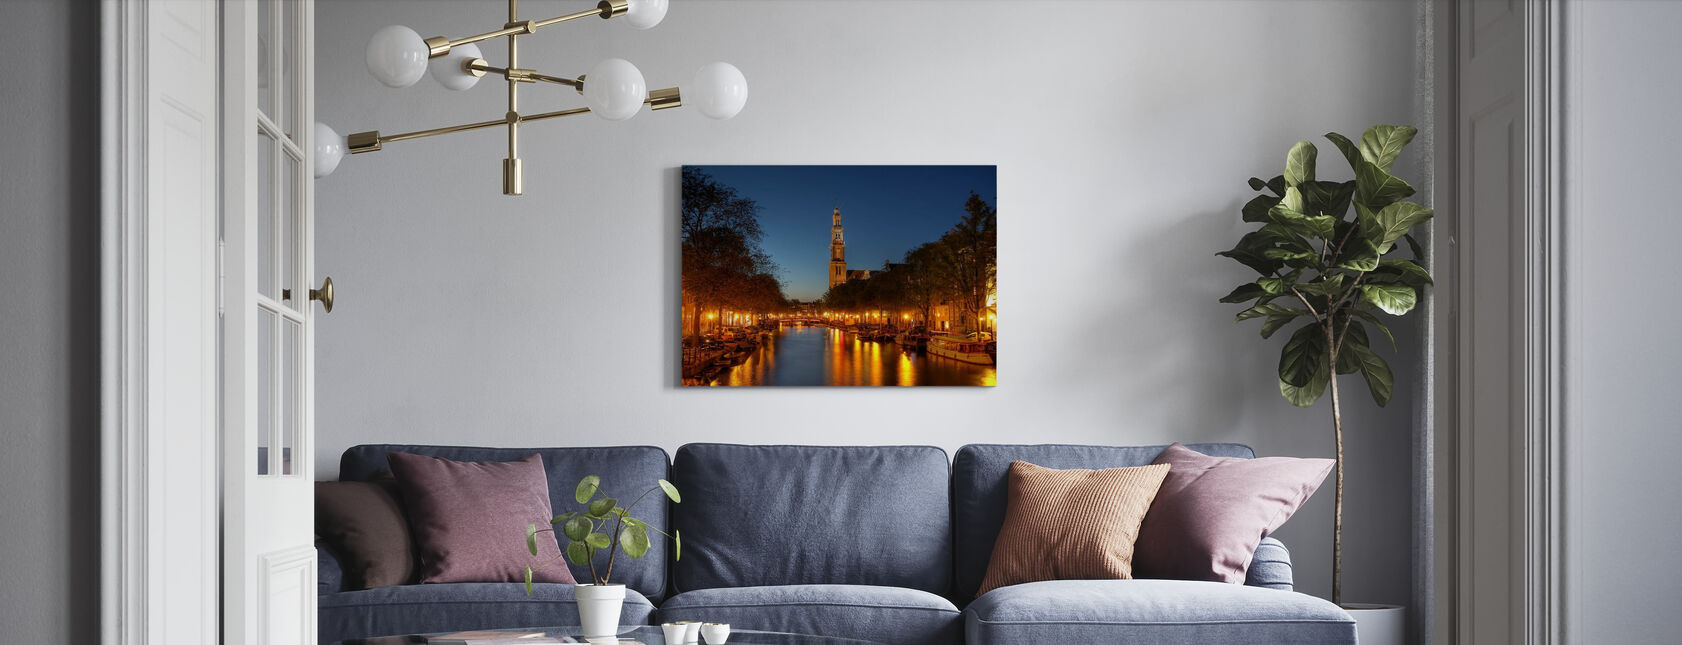 Prinsengracht Canal in Amsterdam - Canvas print - Living Room